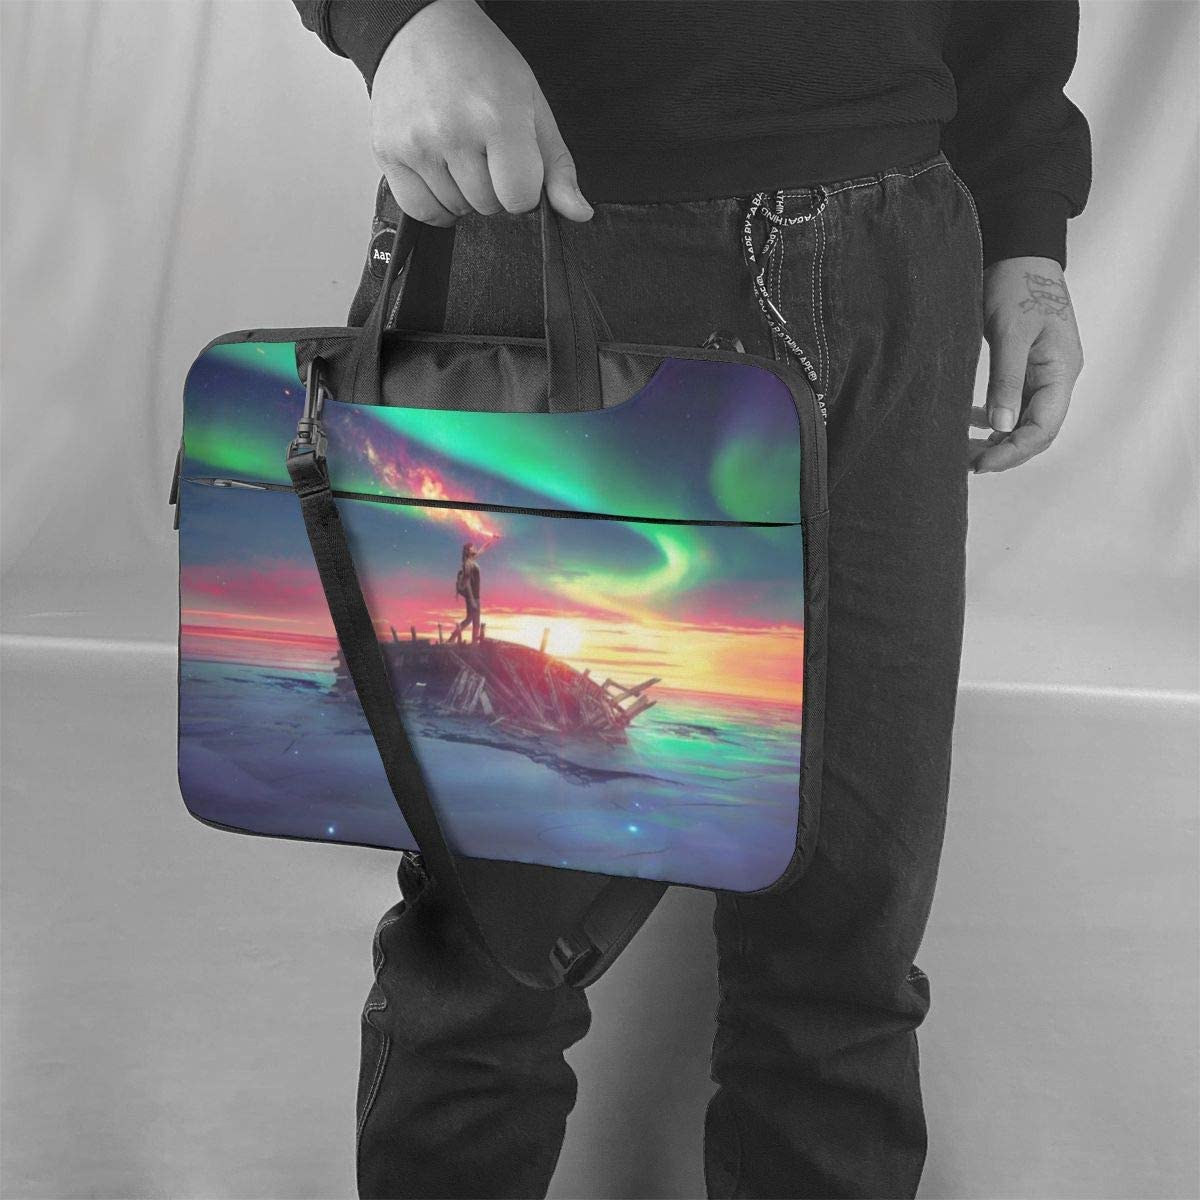 Iridescent Aurora Computer Sleeve Cover with Handle Samsung Asus Laptop Shoulder Bag Carrying Laptop Case 15.6 Inch Business Briefcase Protective Bag for Ultrabook MacBook Sony Notebook